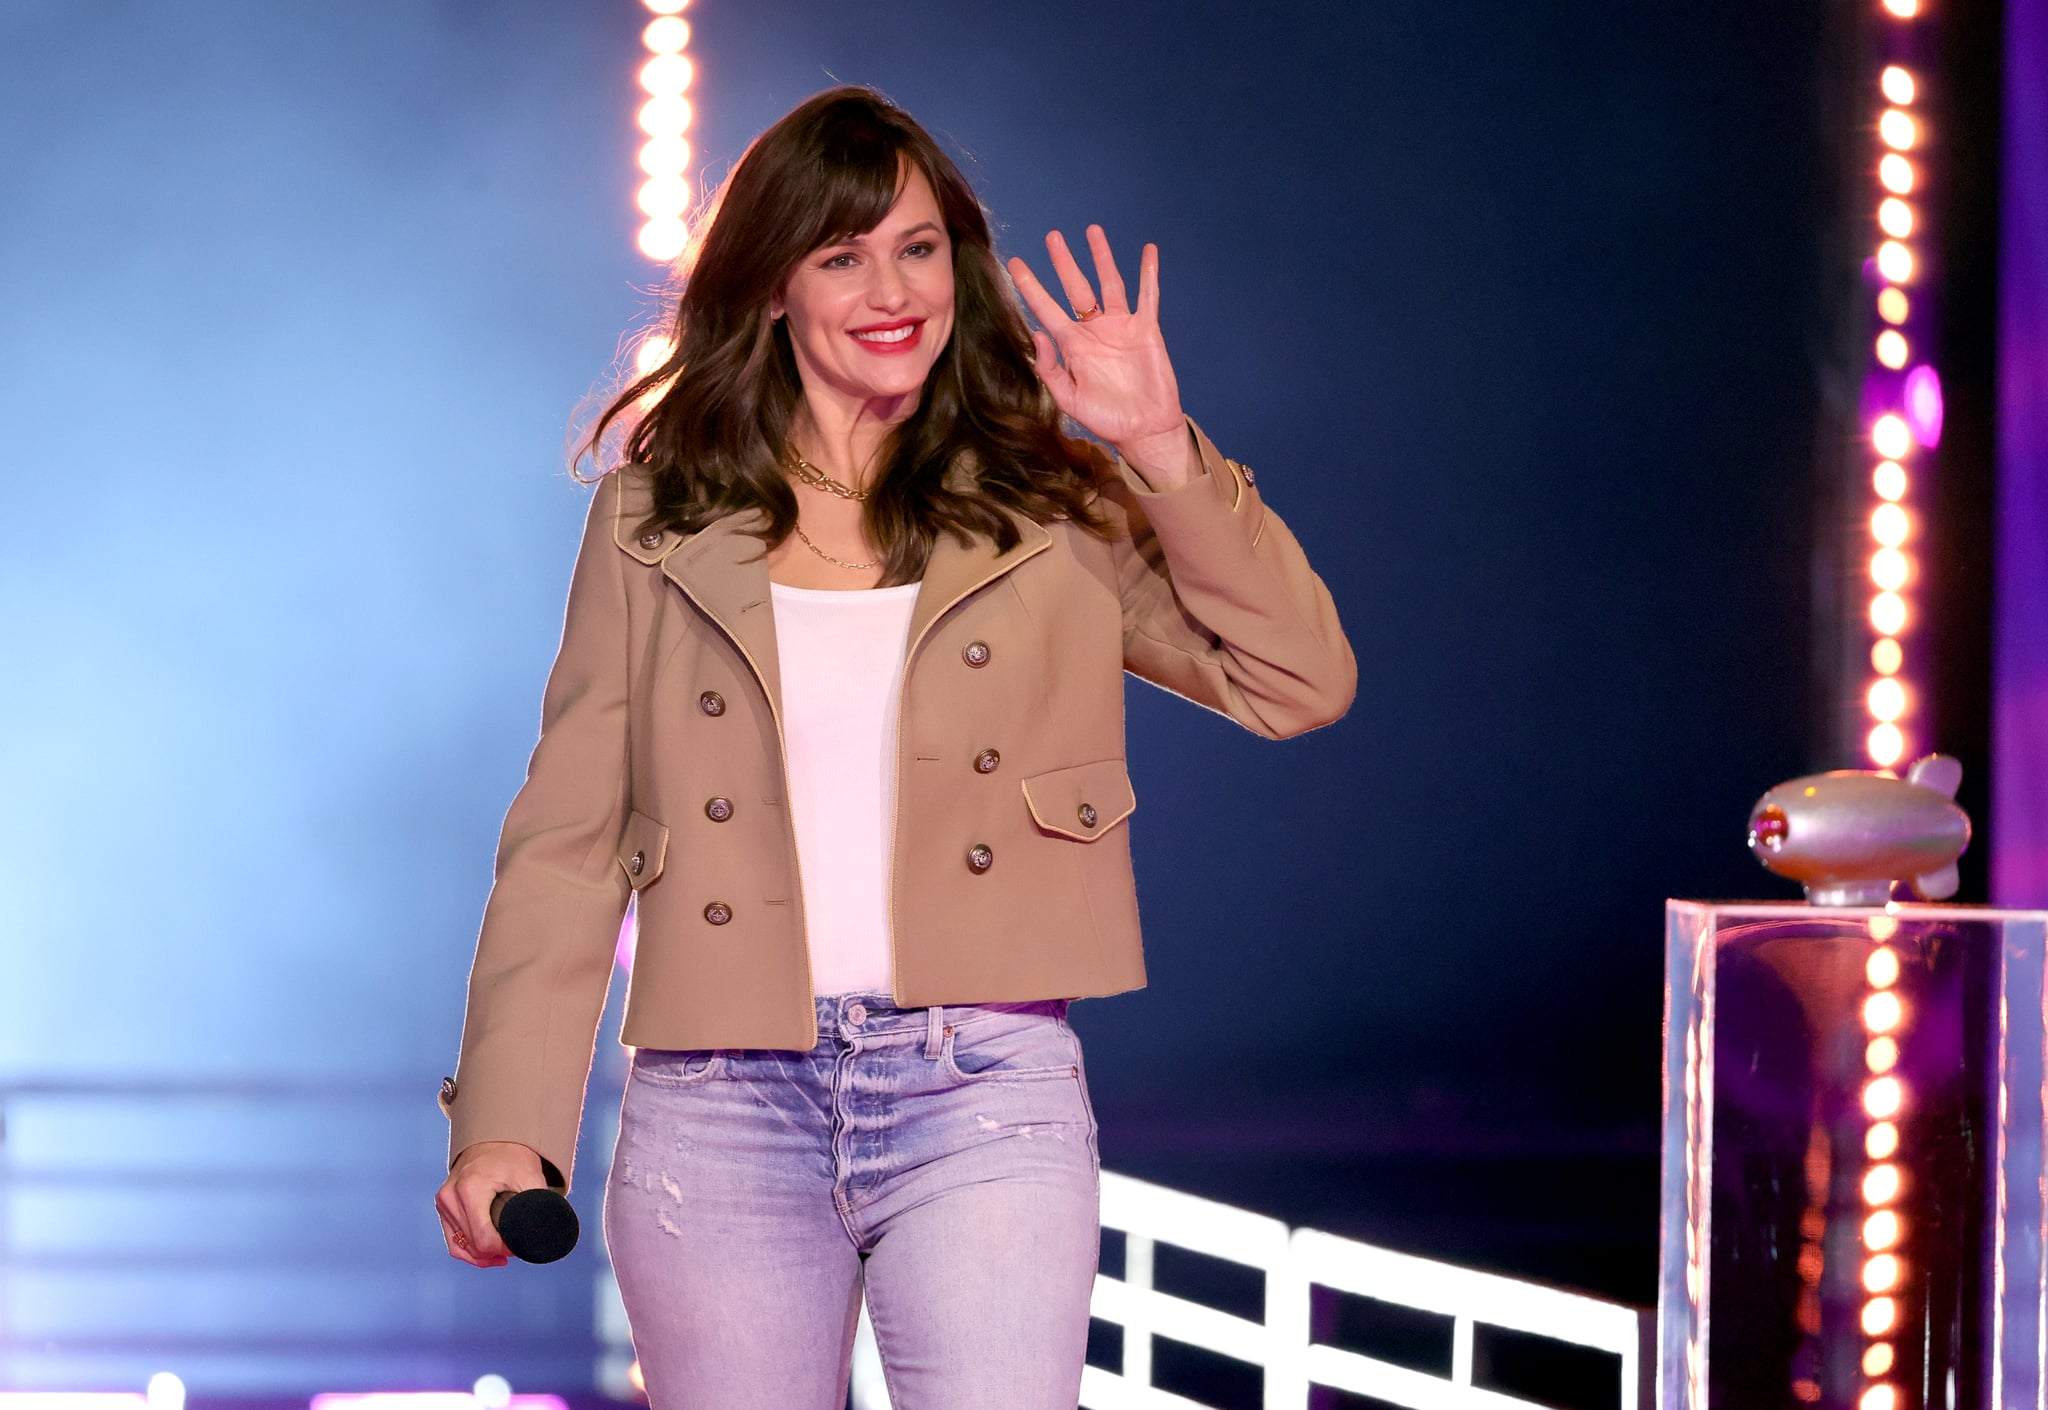 SANTA MONICA, CALIFORNIA - MARCH 13: In this image released on March 13, Jennifer Garner walks onstage during Nickelodeon's Kids' Choice Awards at Barker Hangar on March 13, 2021 in Santa Monica, California. (Photo by Rich Fury/KCA2021/Getty Images for Nickelodeon)